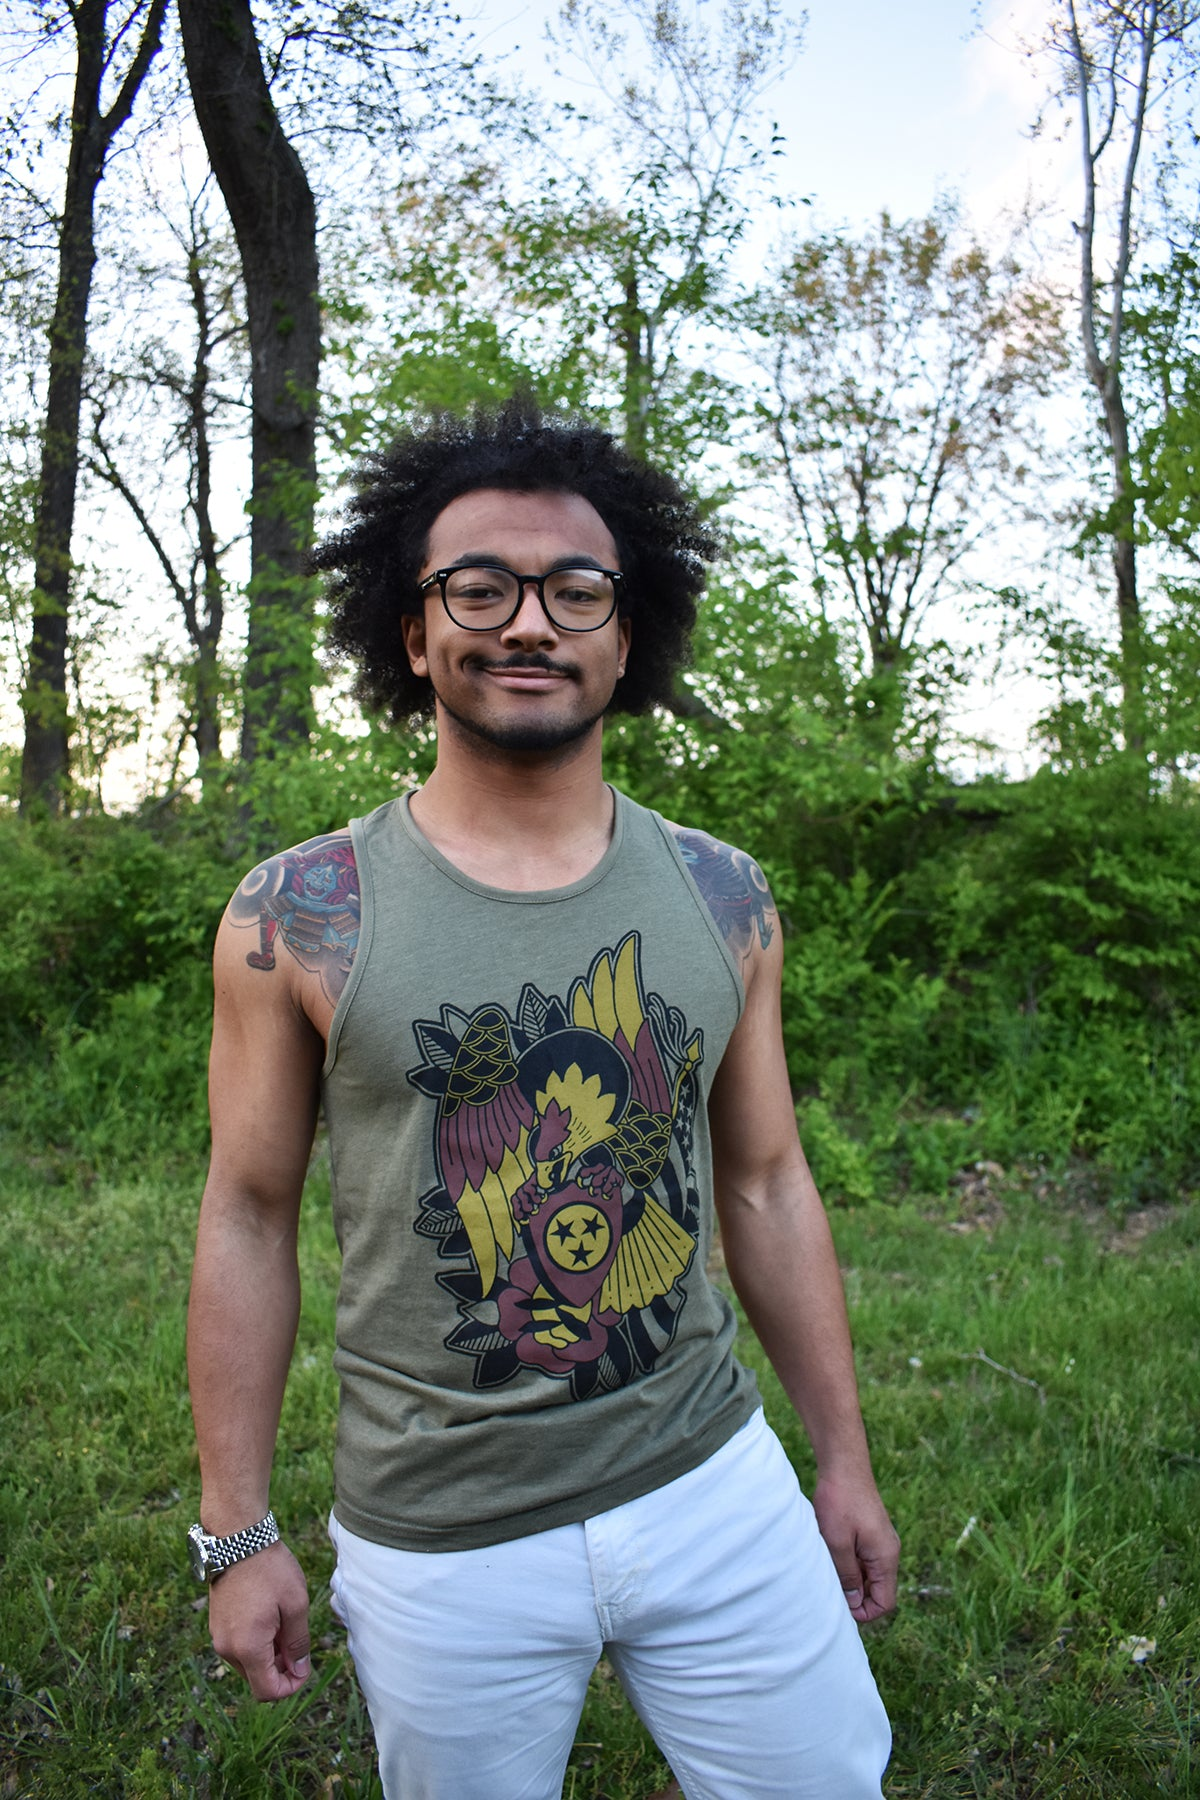 Male model wearing a green tank top with Brice Hamm's Tri-Star Eagle design in black, gold, and red on the front.